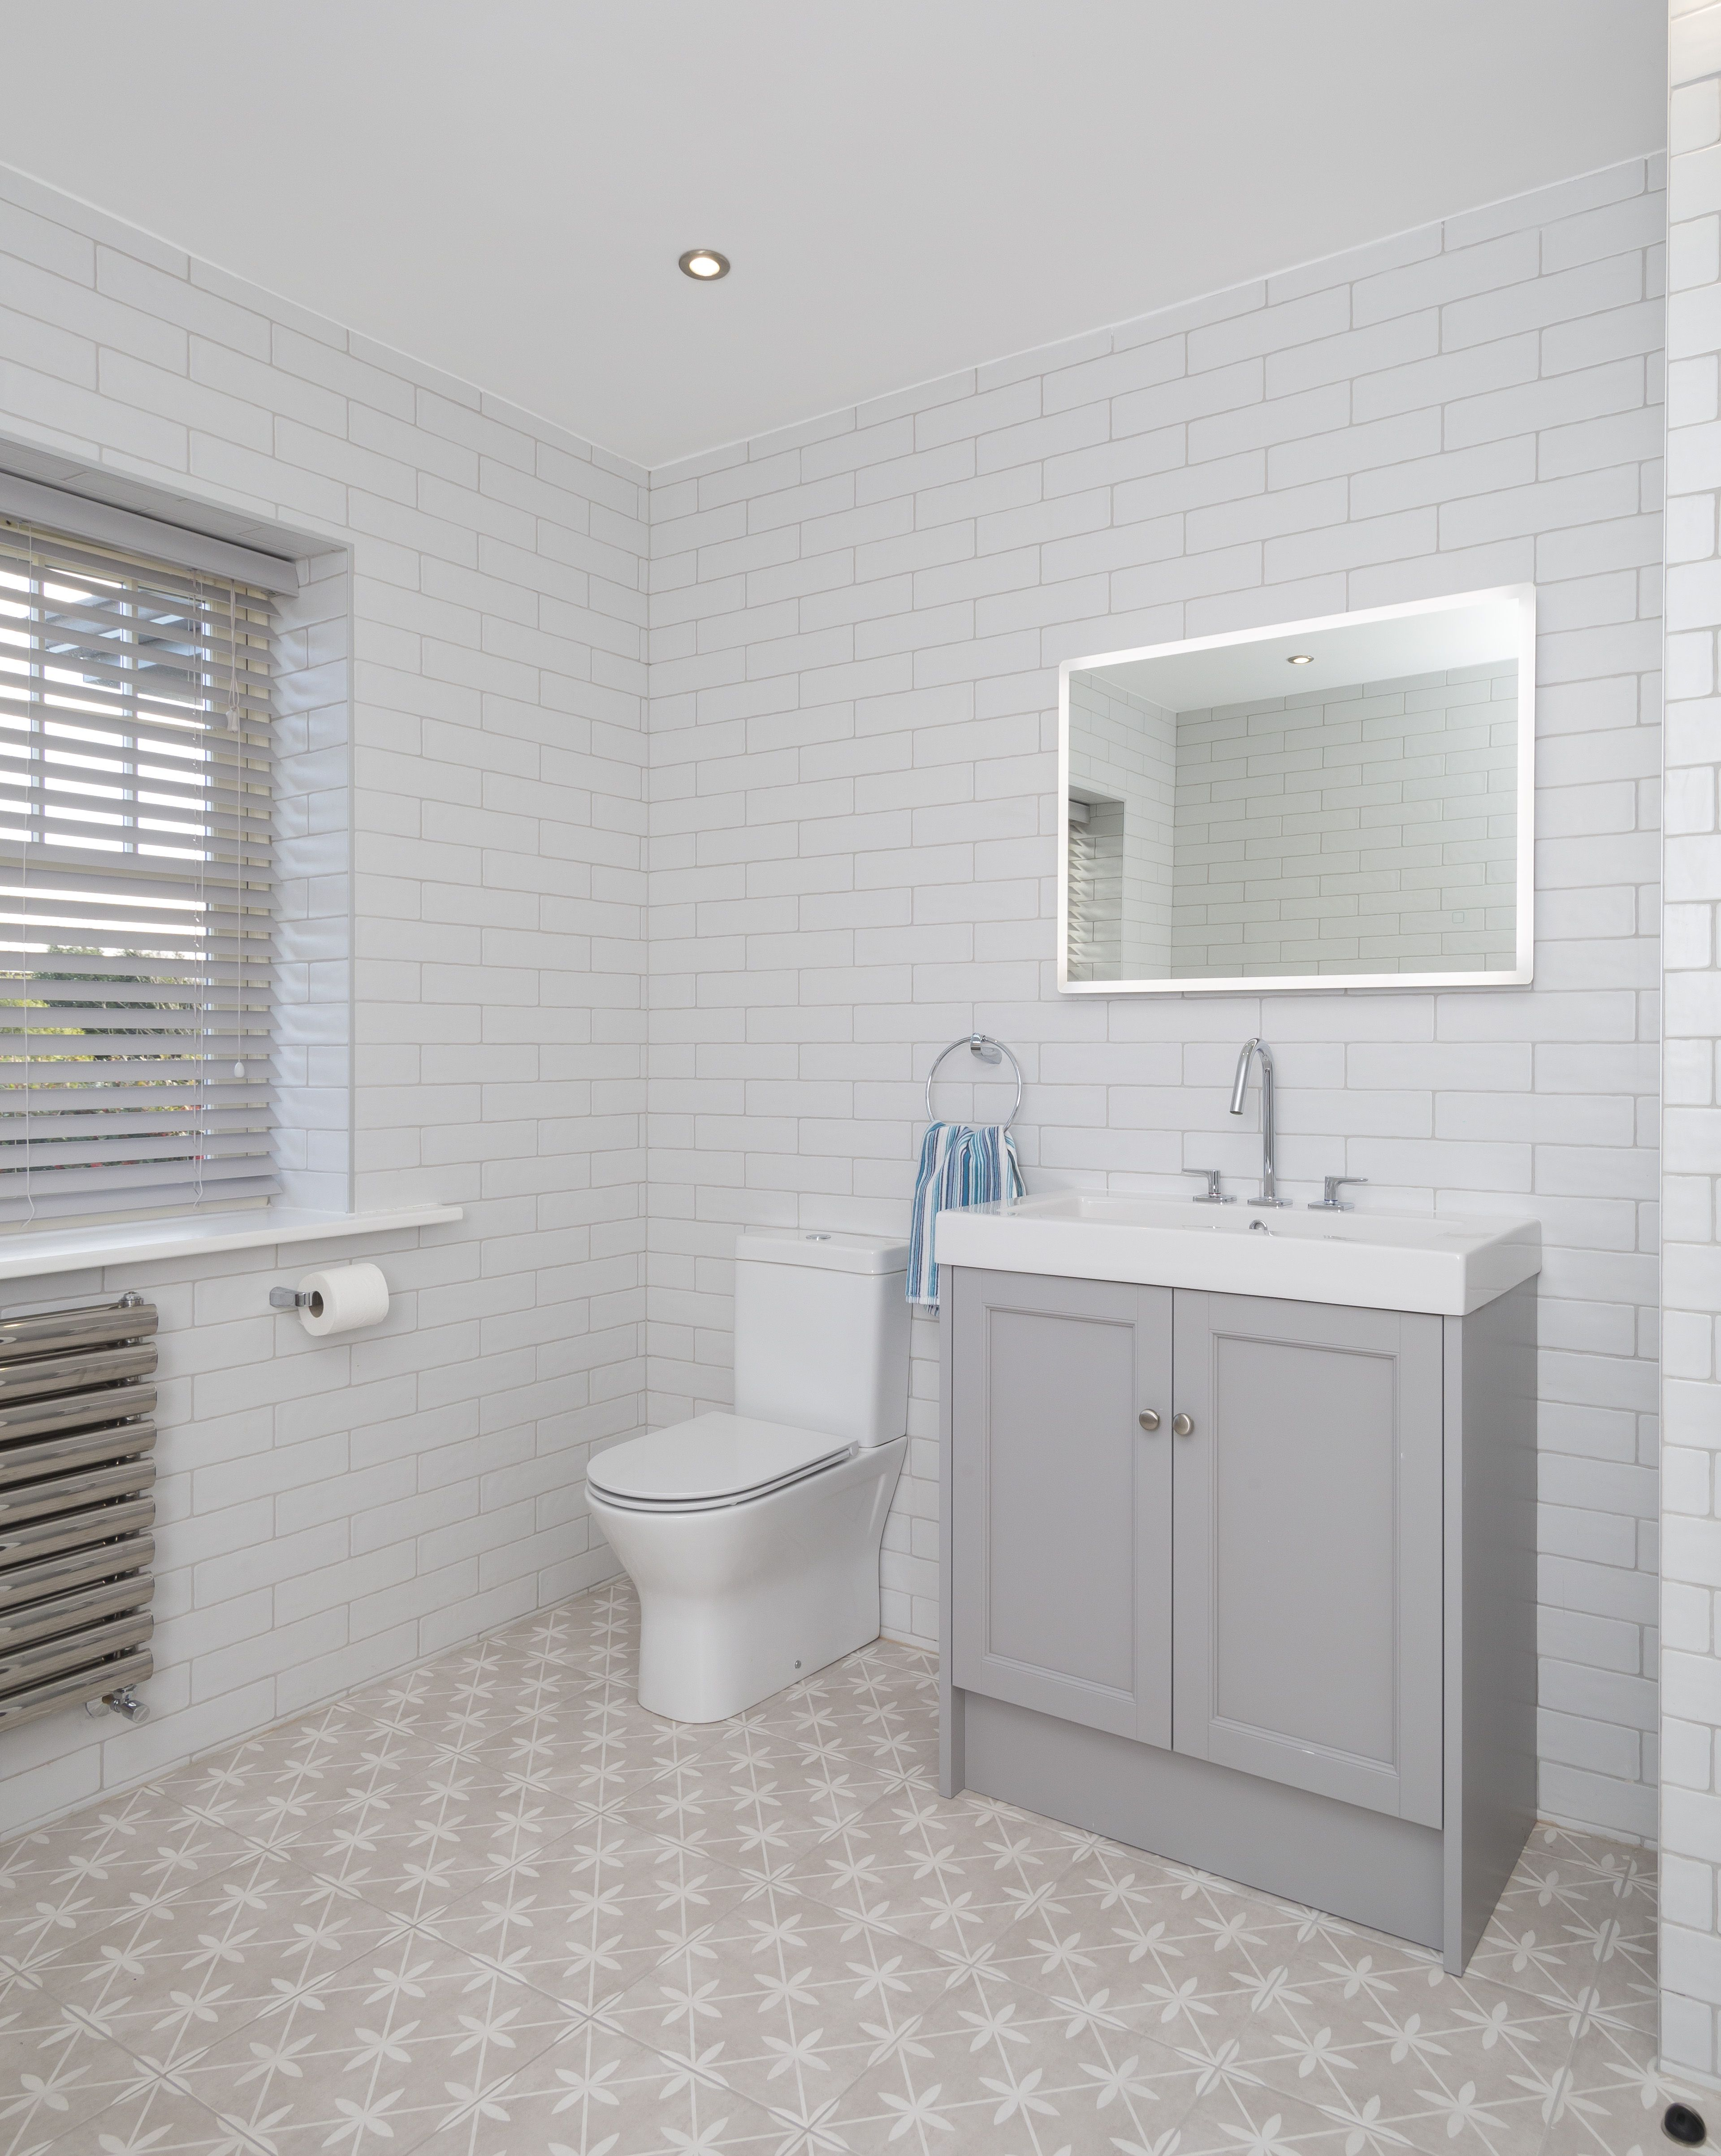 Looking For A Pattern Tile That Is Less Brash And More Subtle Laura Ashley Wicker Dove Grey Is The Wa Laura Ashley Bathroom Tiles Small Bathroom Tile Bathroom